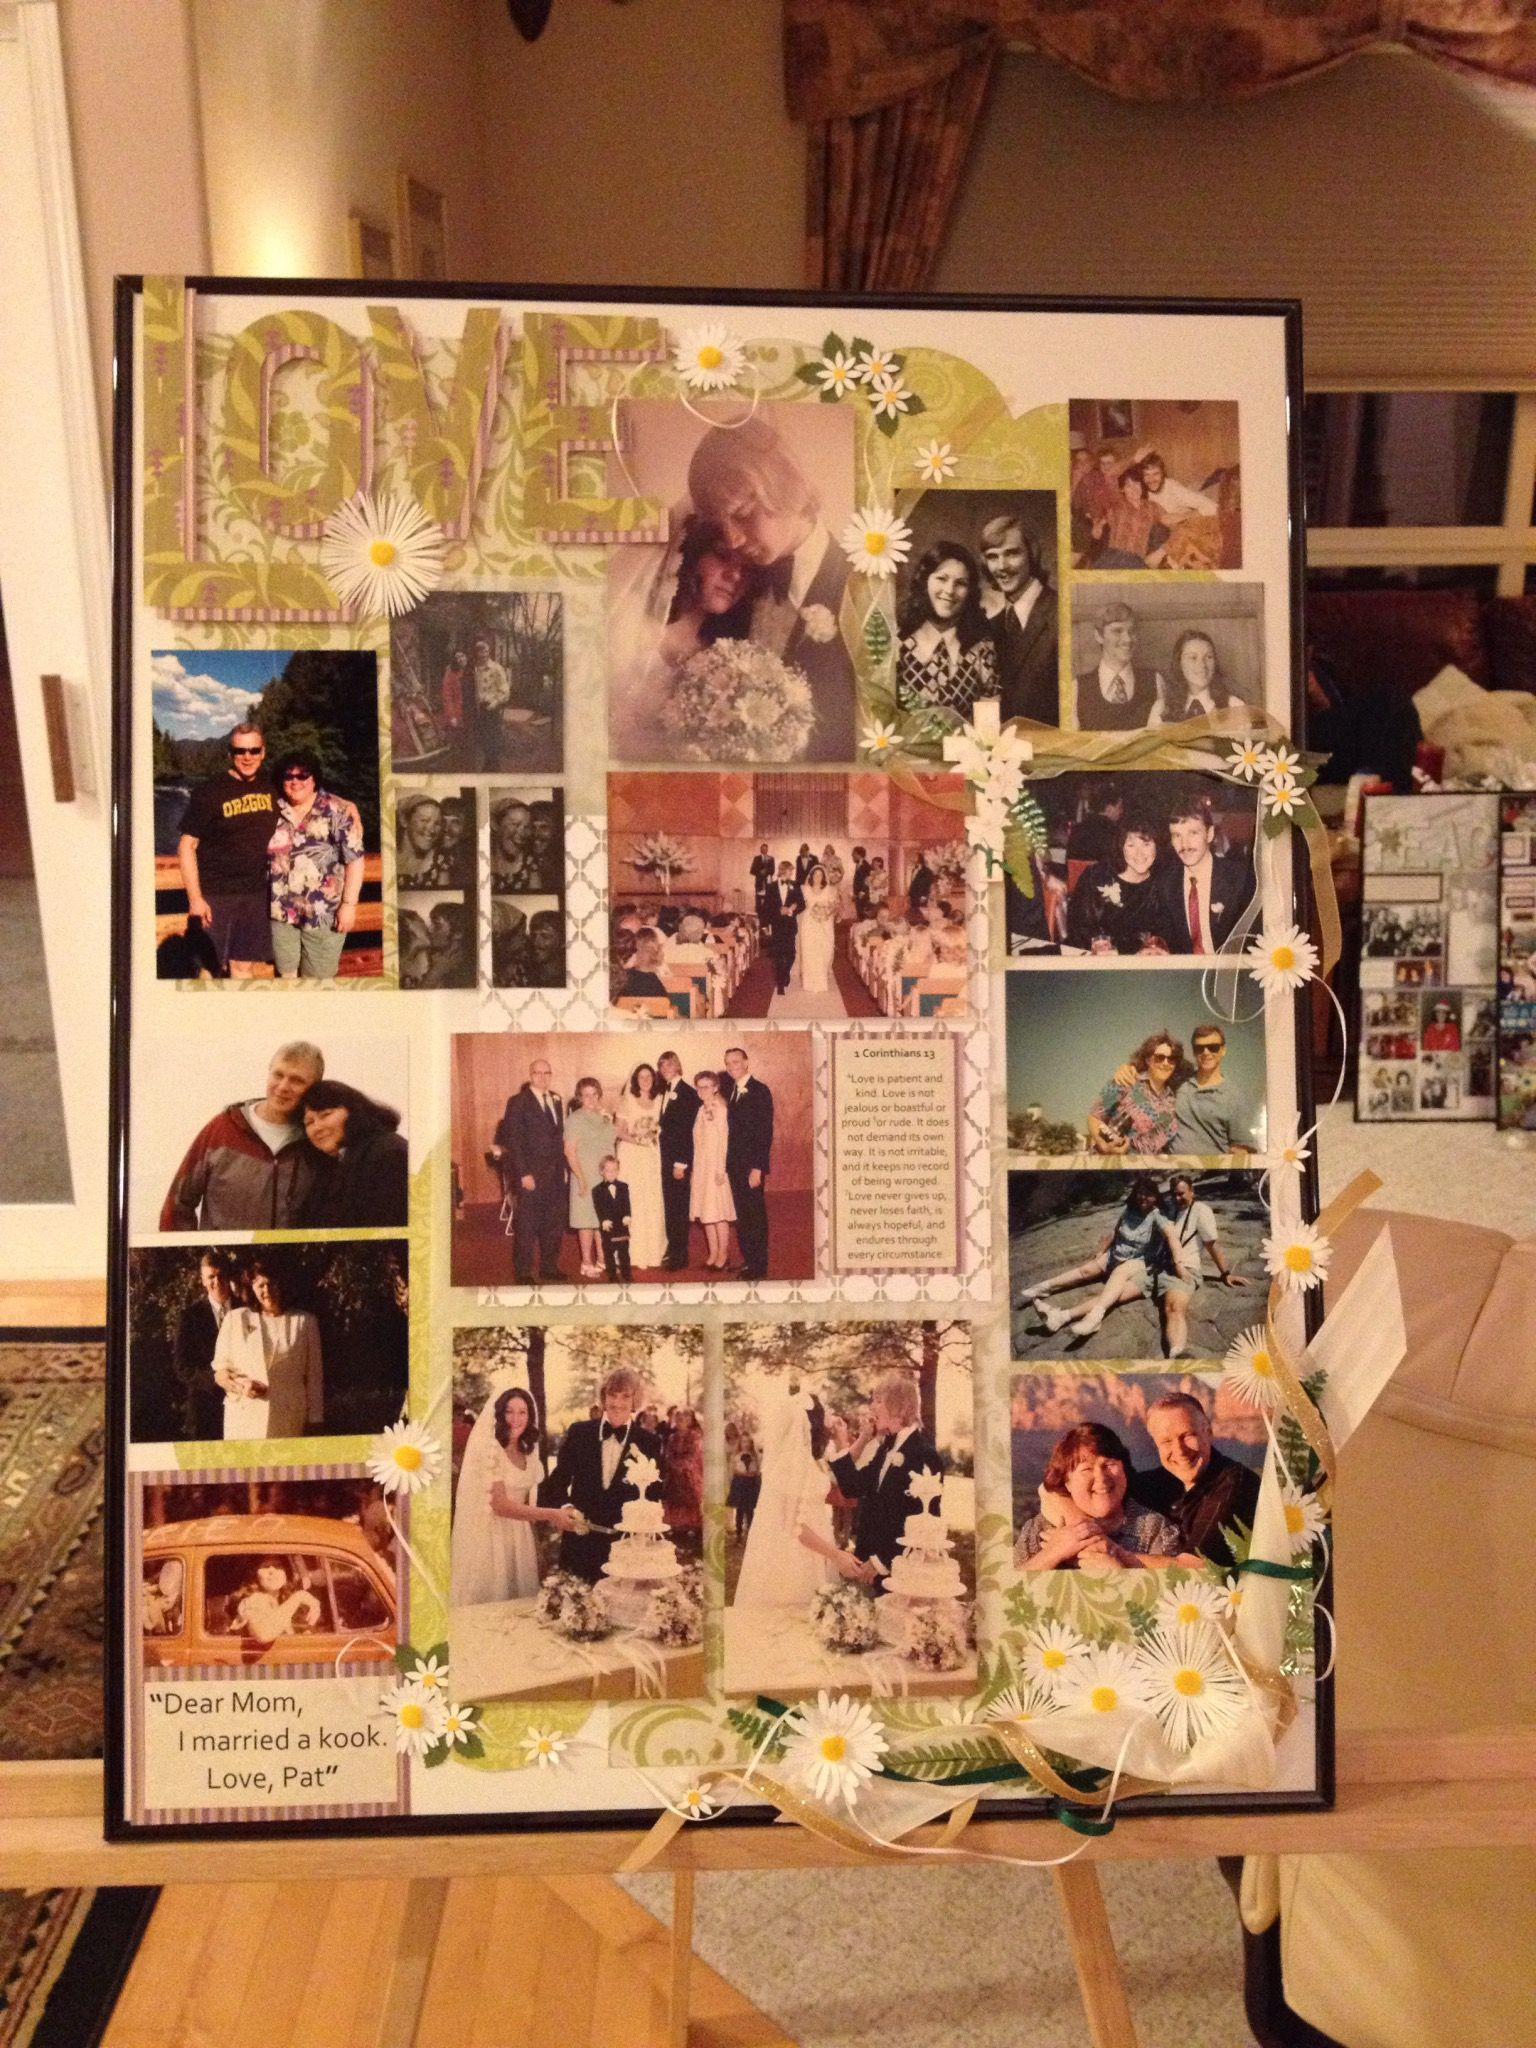 Make a memory board out of family photos and scrapbooking materials